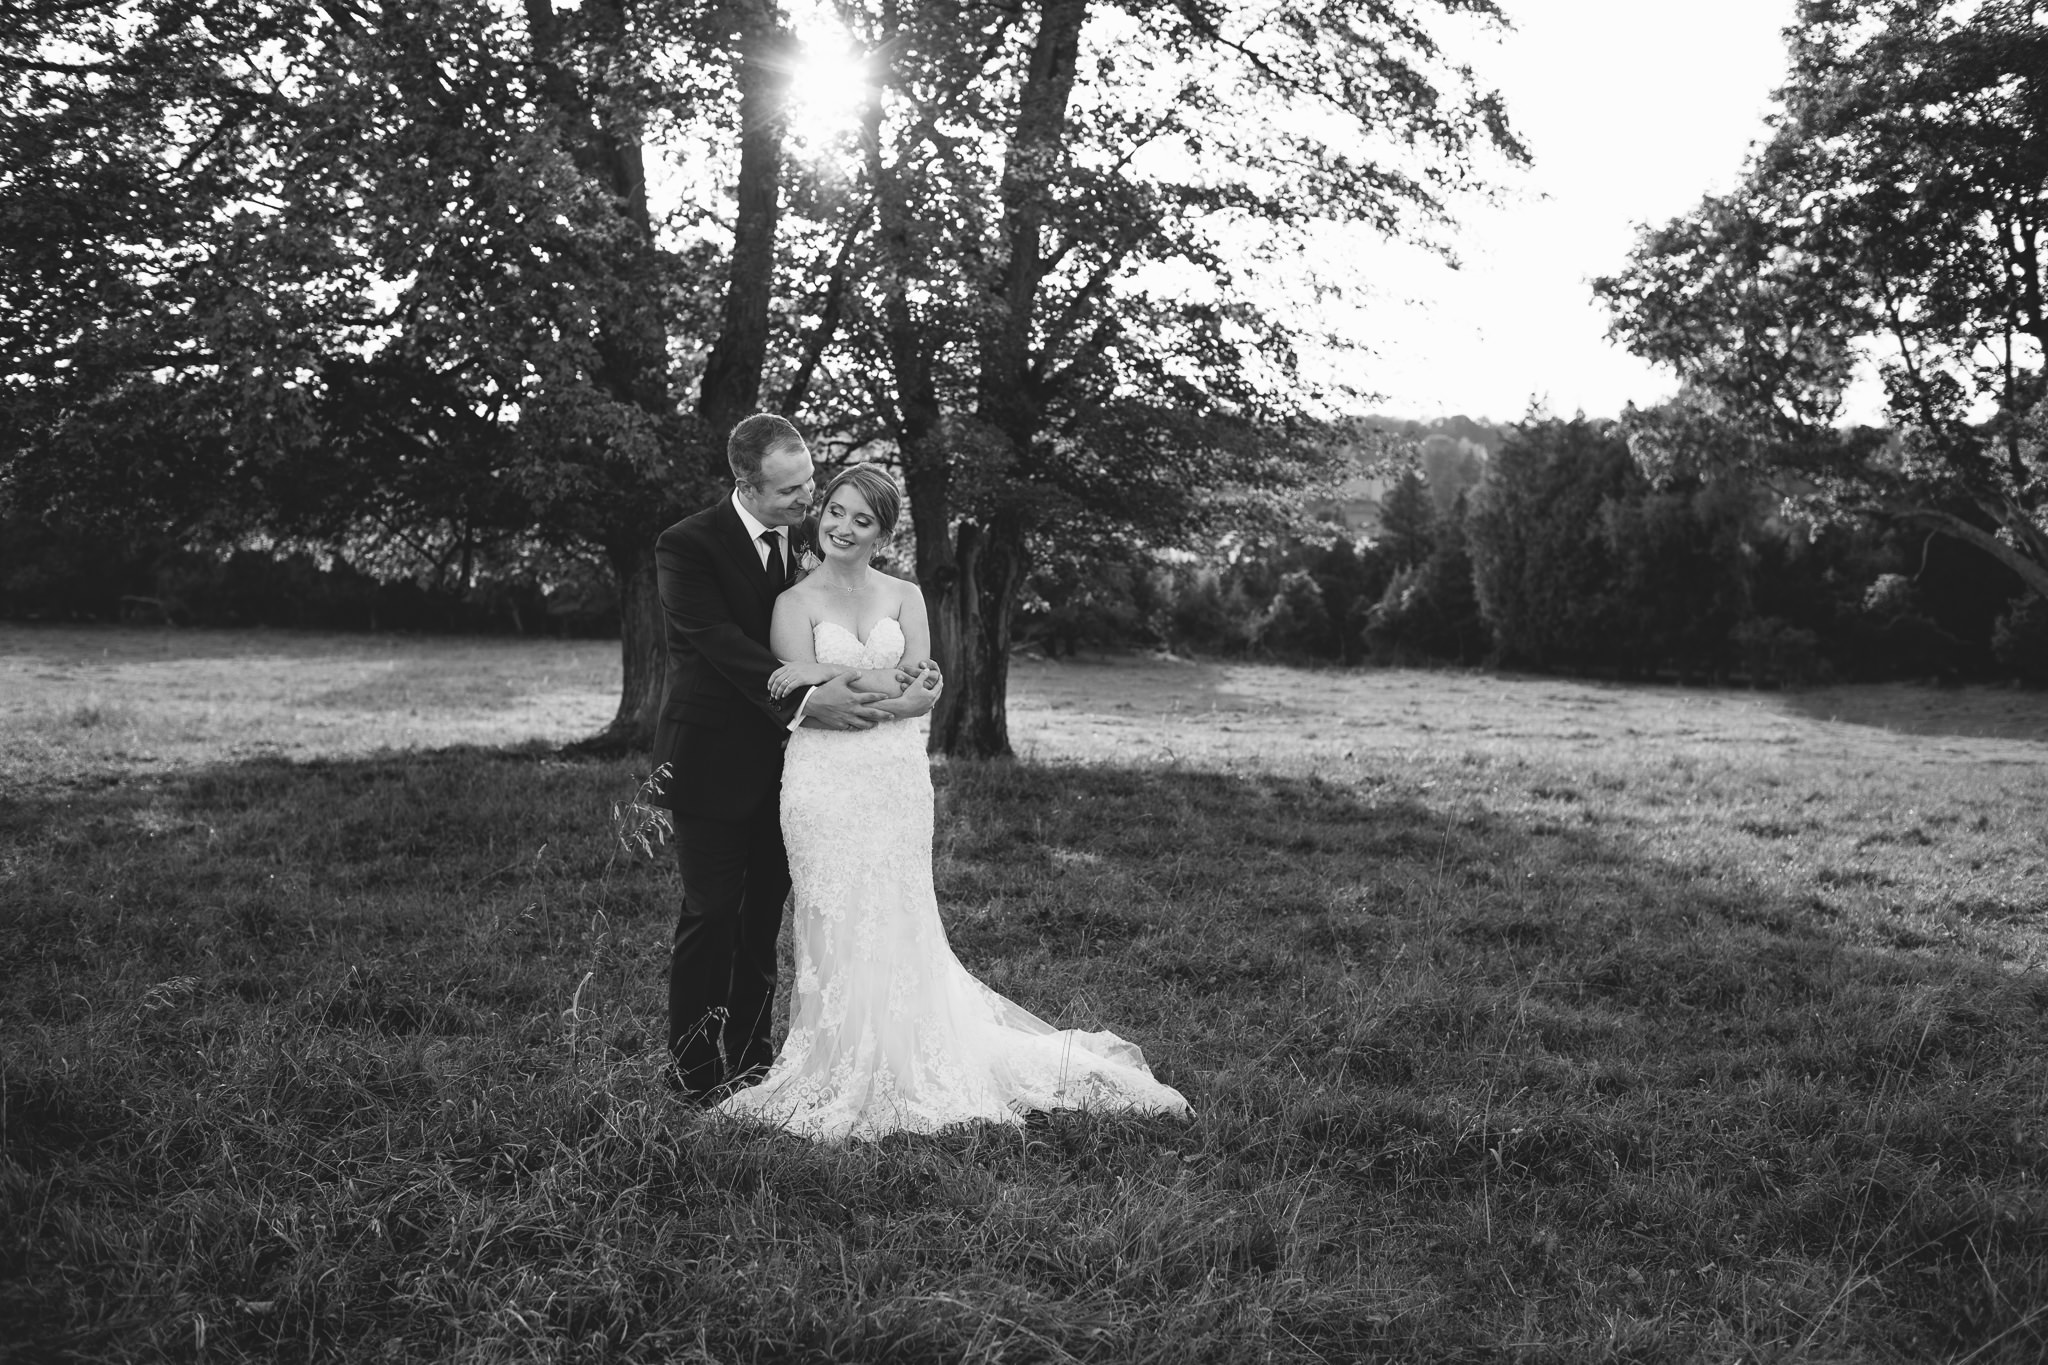 Bride and Groom Embracing each other under tree